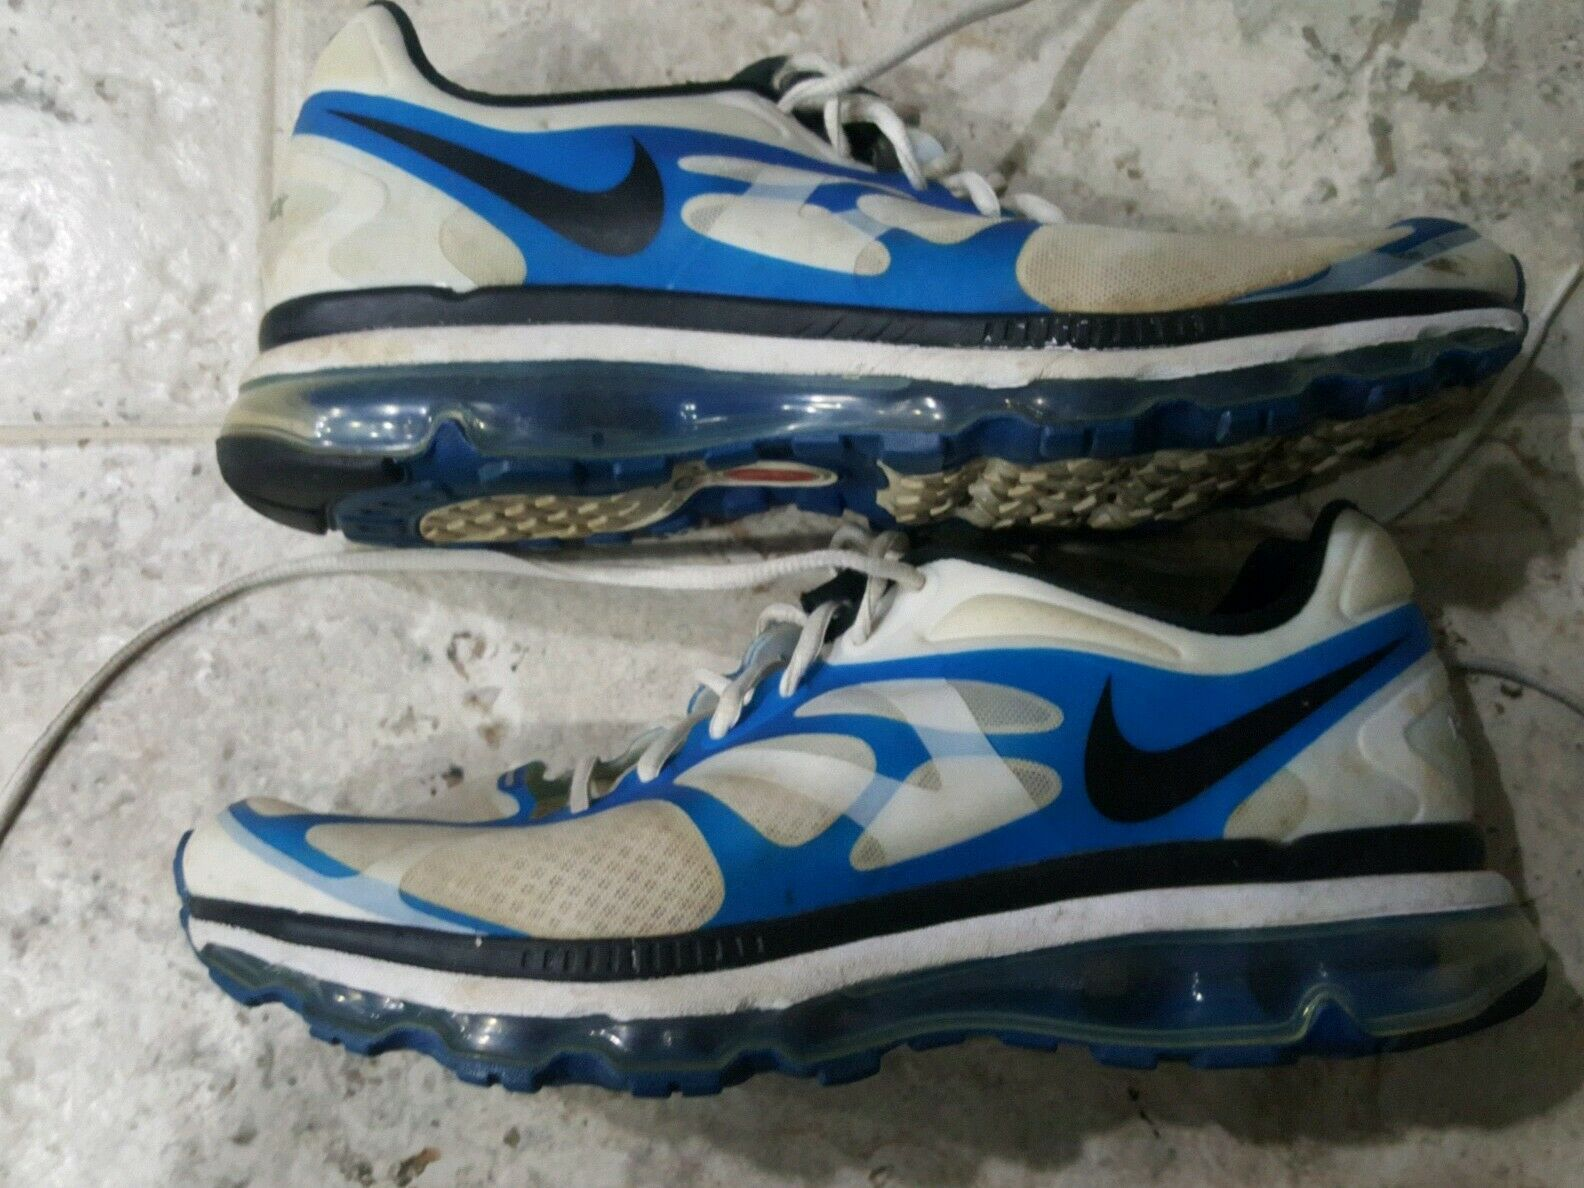 Nike Air Max 2012 + Running shoes 487982-104 Mens Size US12 ONLY SIZE ON EBAY